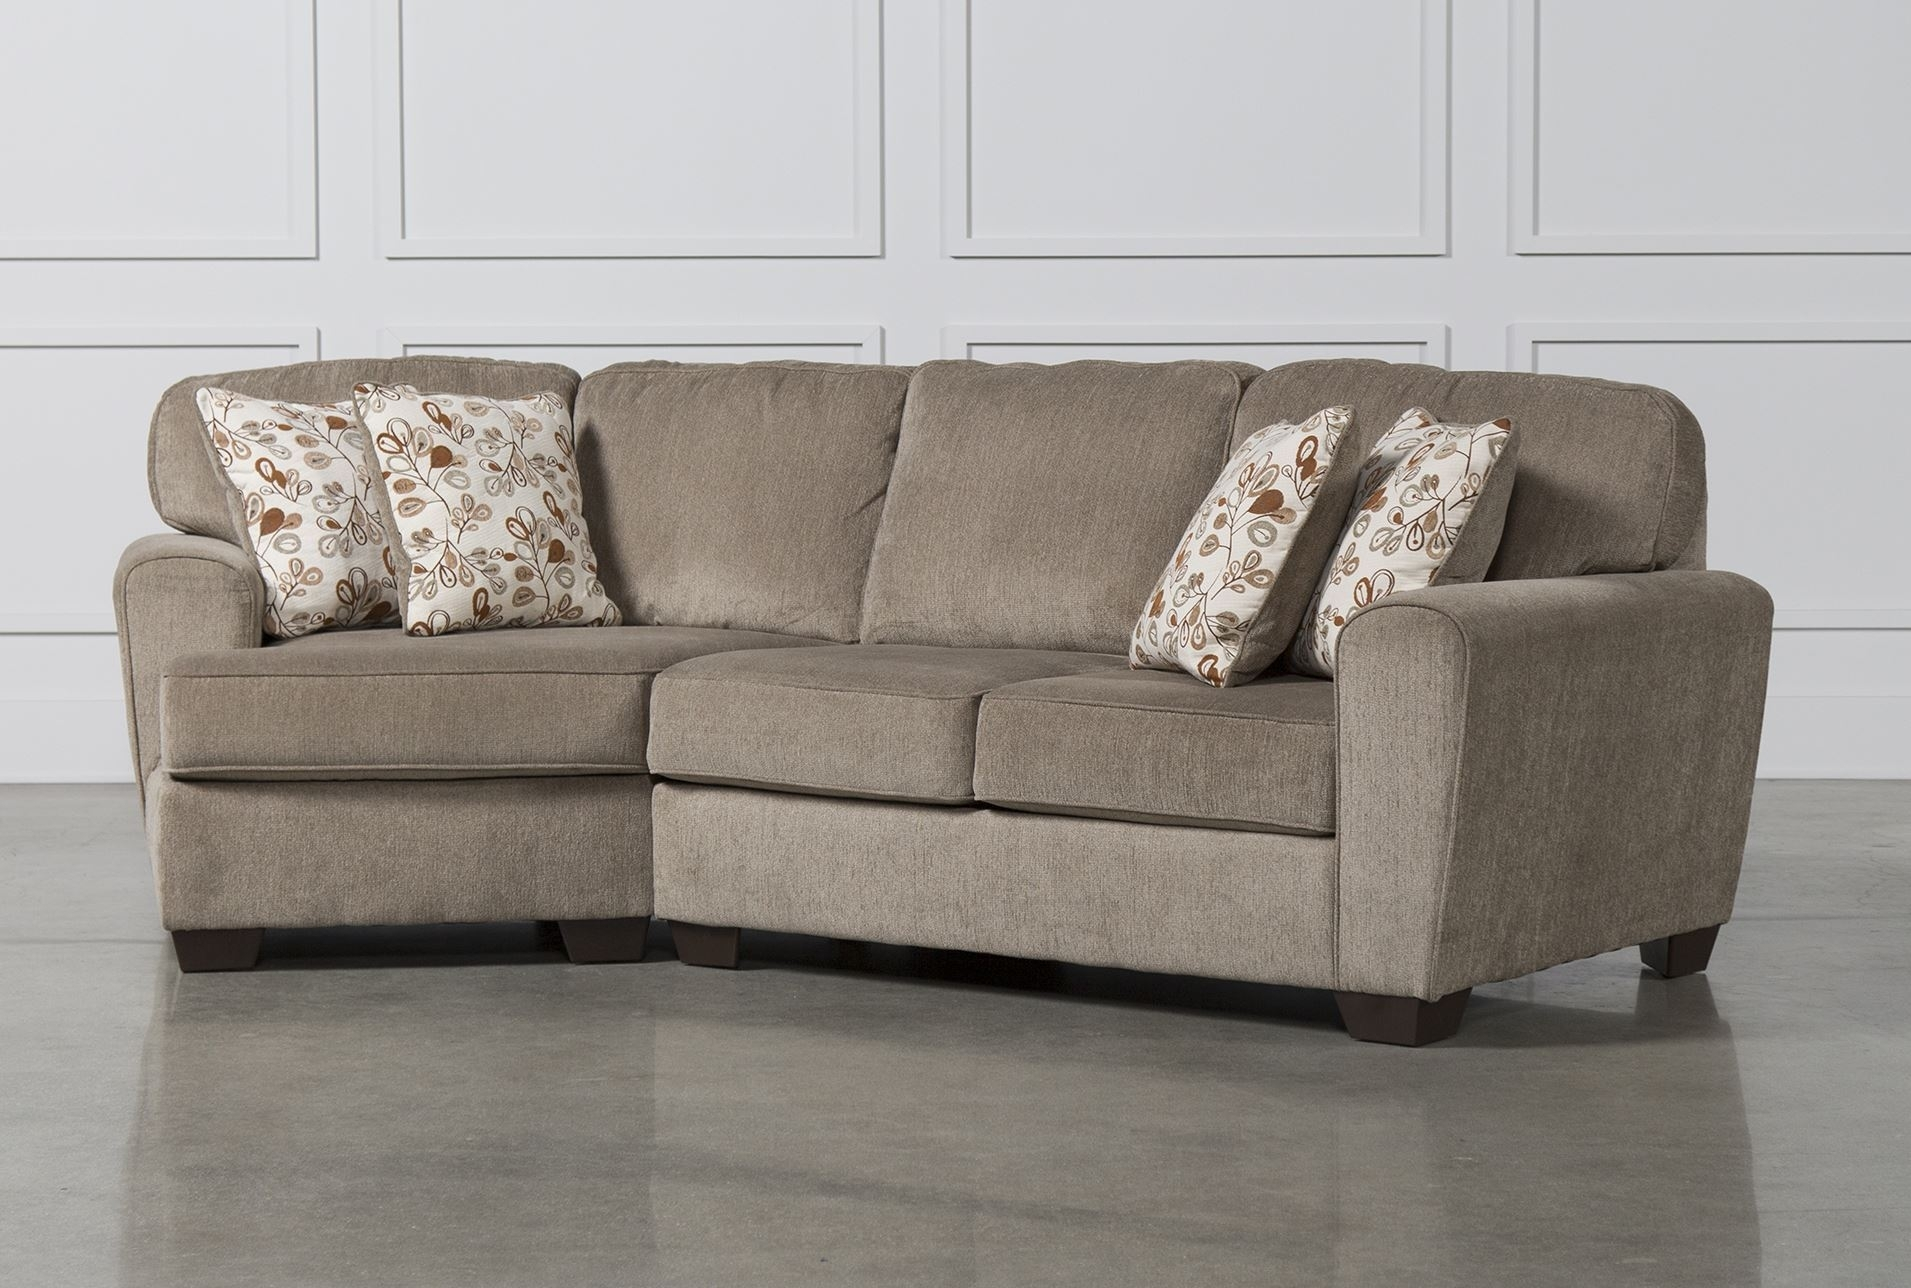 Awesome Collection Of 2 Piece Chaise Sectional In Kerri 2 Piece For Kerri 2 Piece Sectionals With Raf Chaise (Image 5 of 25)